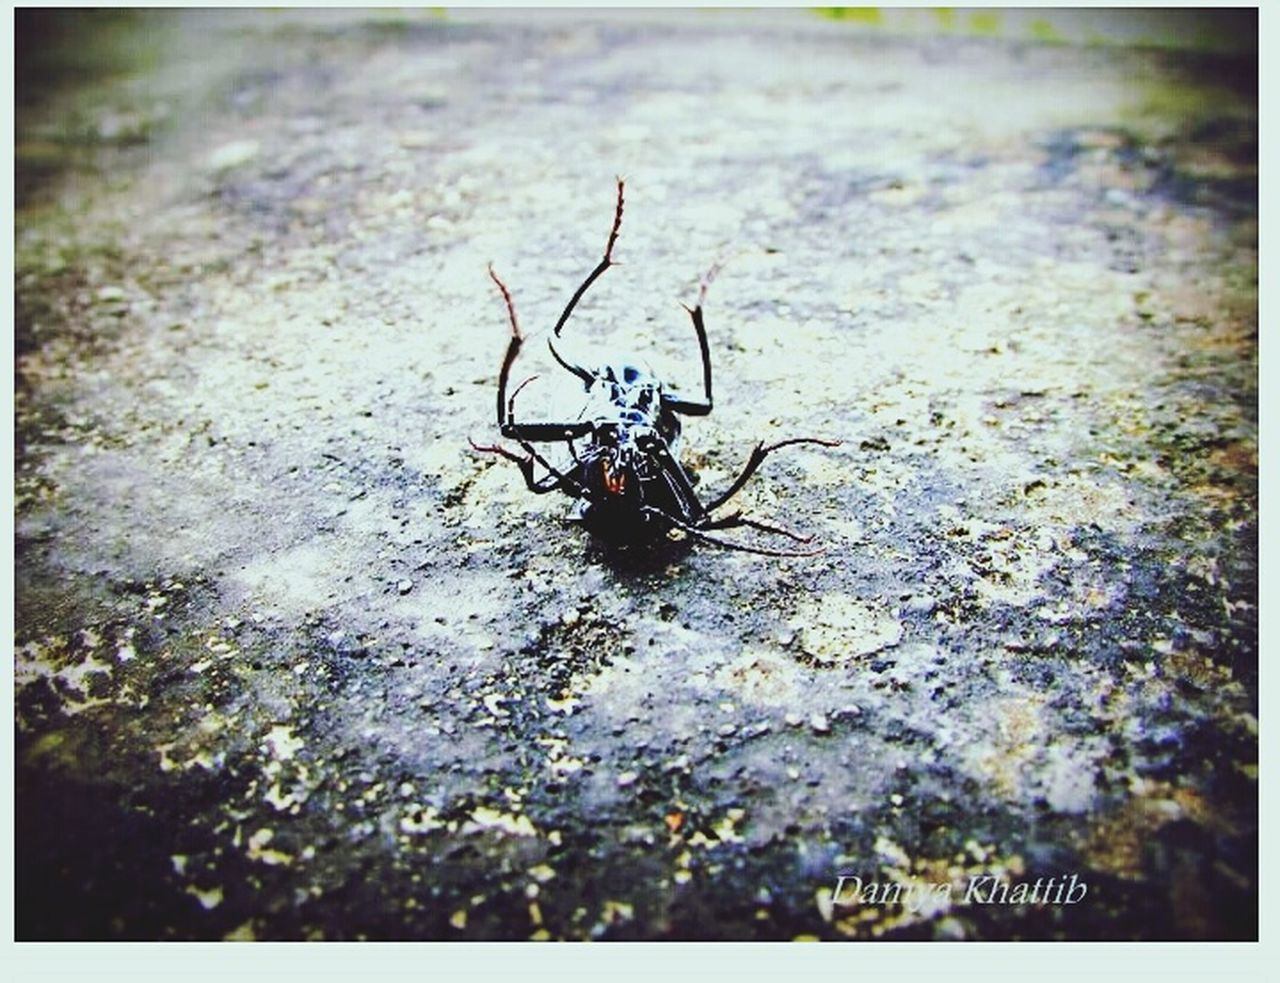 animal themes, one animal, insect, animals in the wild, wildlife, day, no people, outdoors, close-up, full length, nature